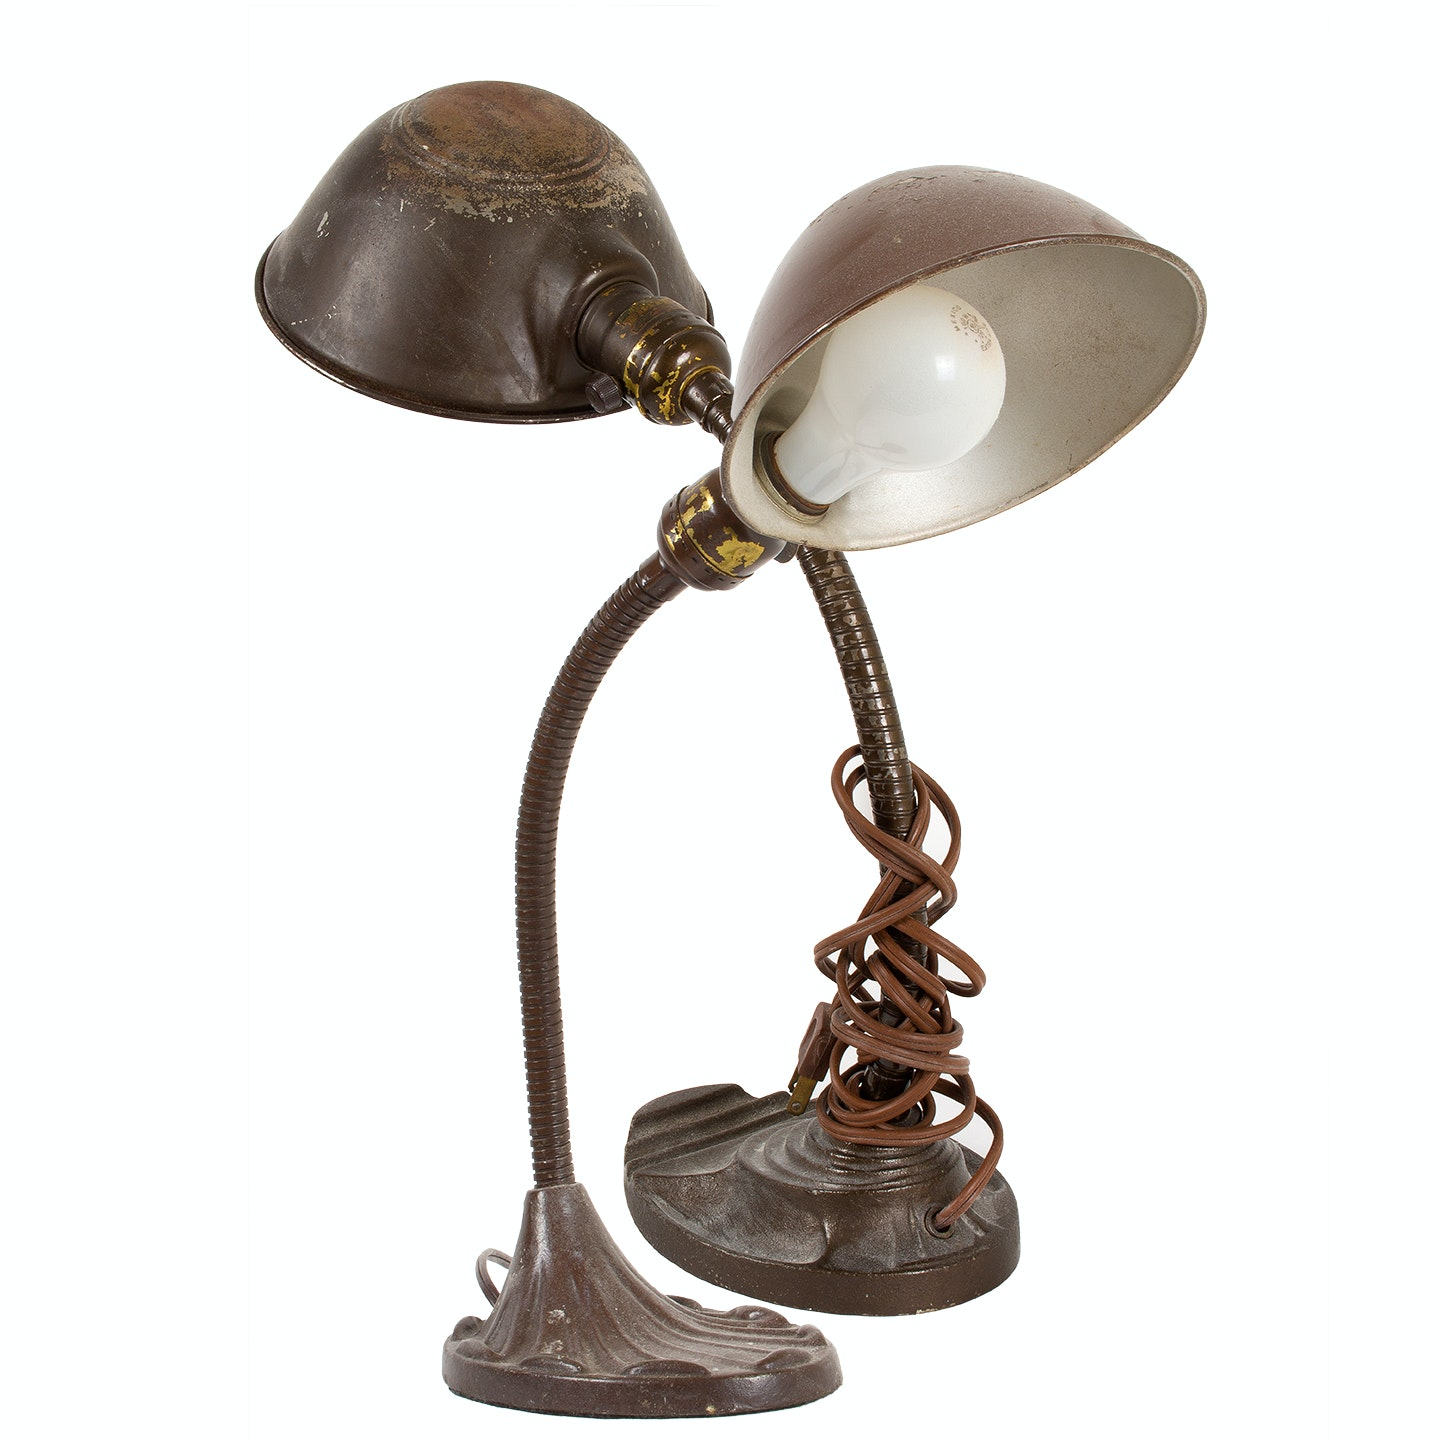 Vintage Eagle and Metal Desk Lamp with Dome Shades